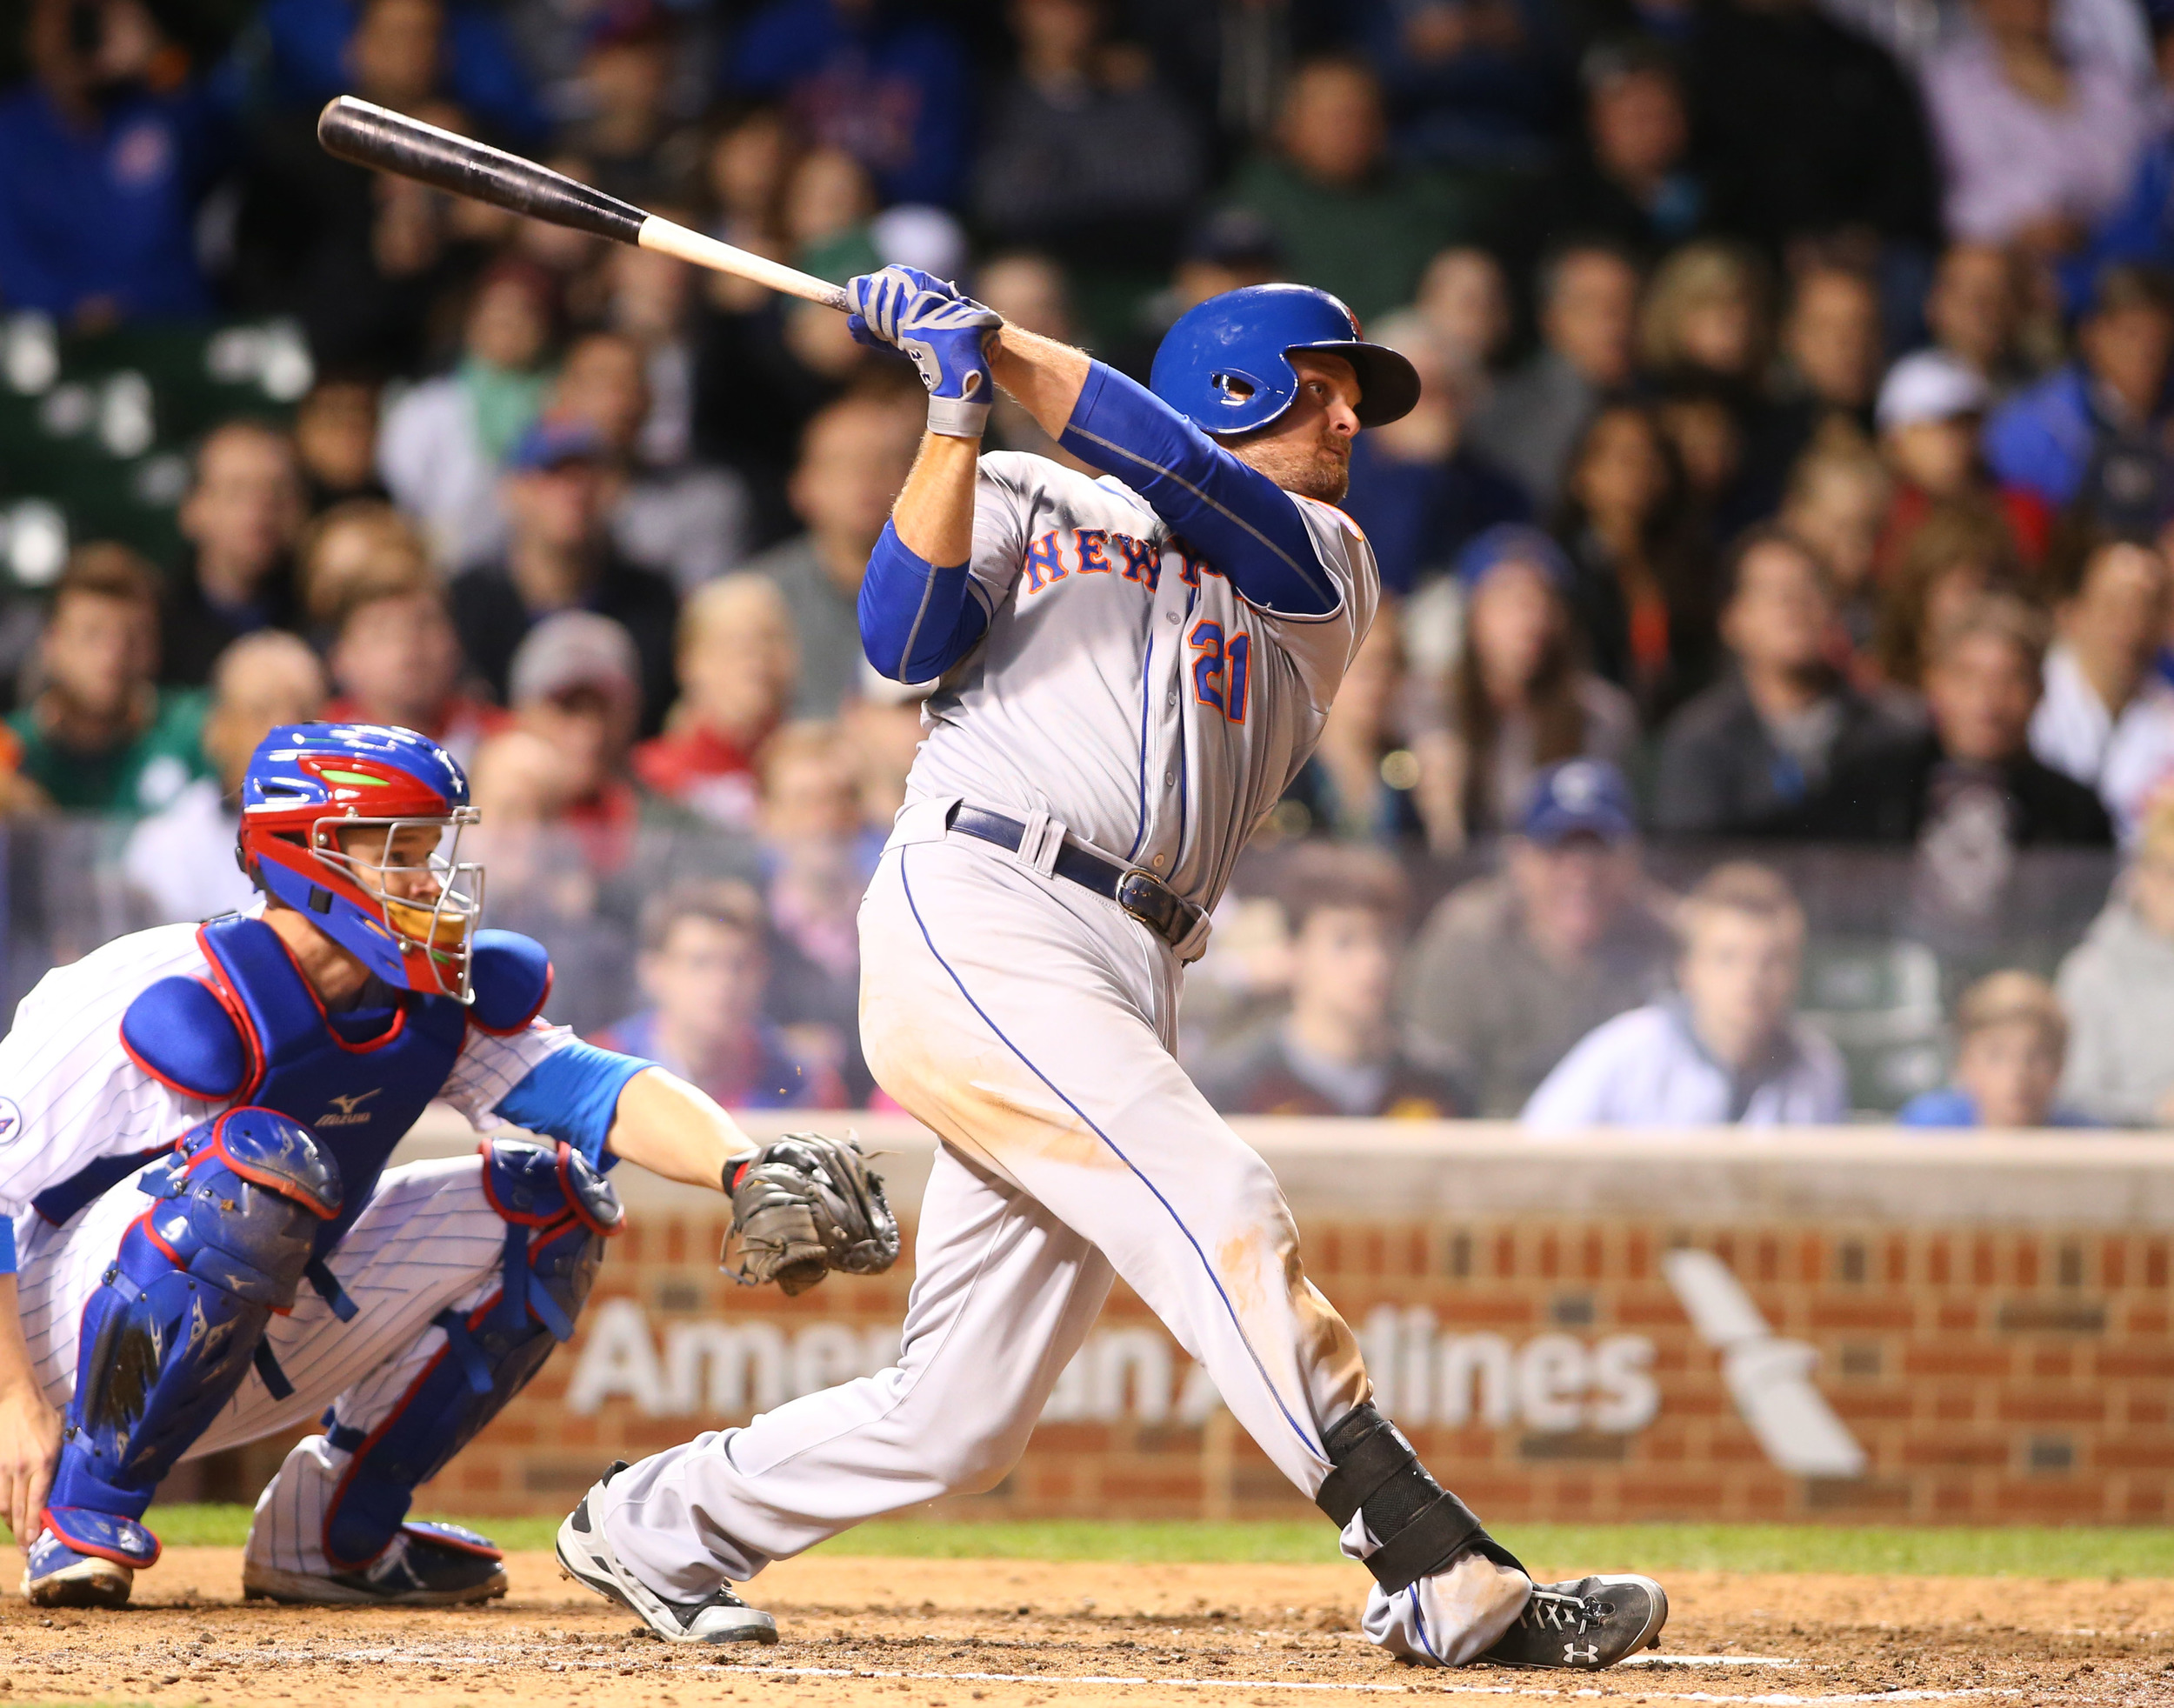 New York Mets first baseman Lucas Duda hits a home run during the sixth inning against the Chicago Cubs at Wrigley Field. Powerful hitting and the ability to clear the fences is a skill that is required in both baseball and T20 cricket. Image supplied by Action Images/Caylor Arnold-USA TODAY Sports